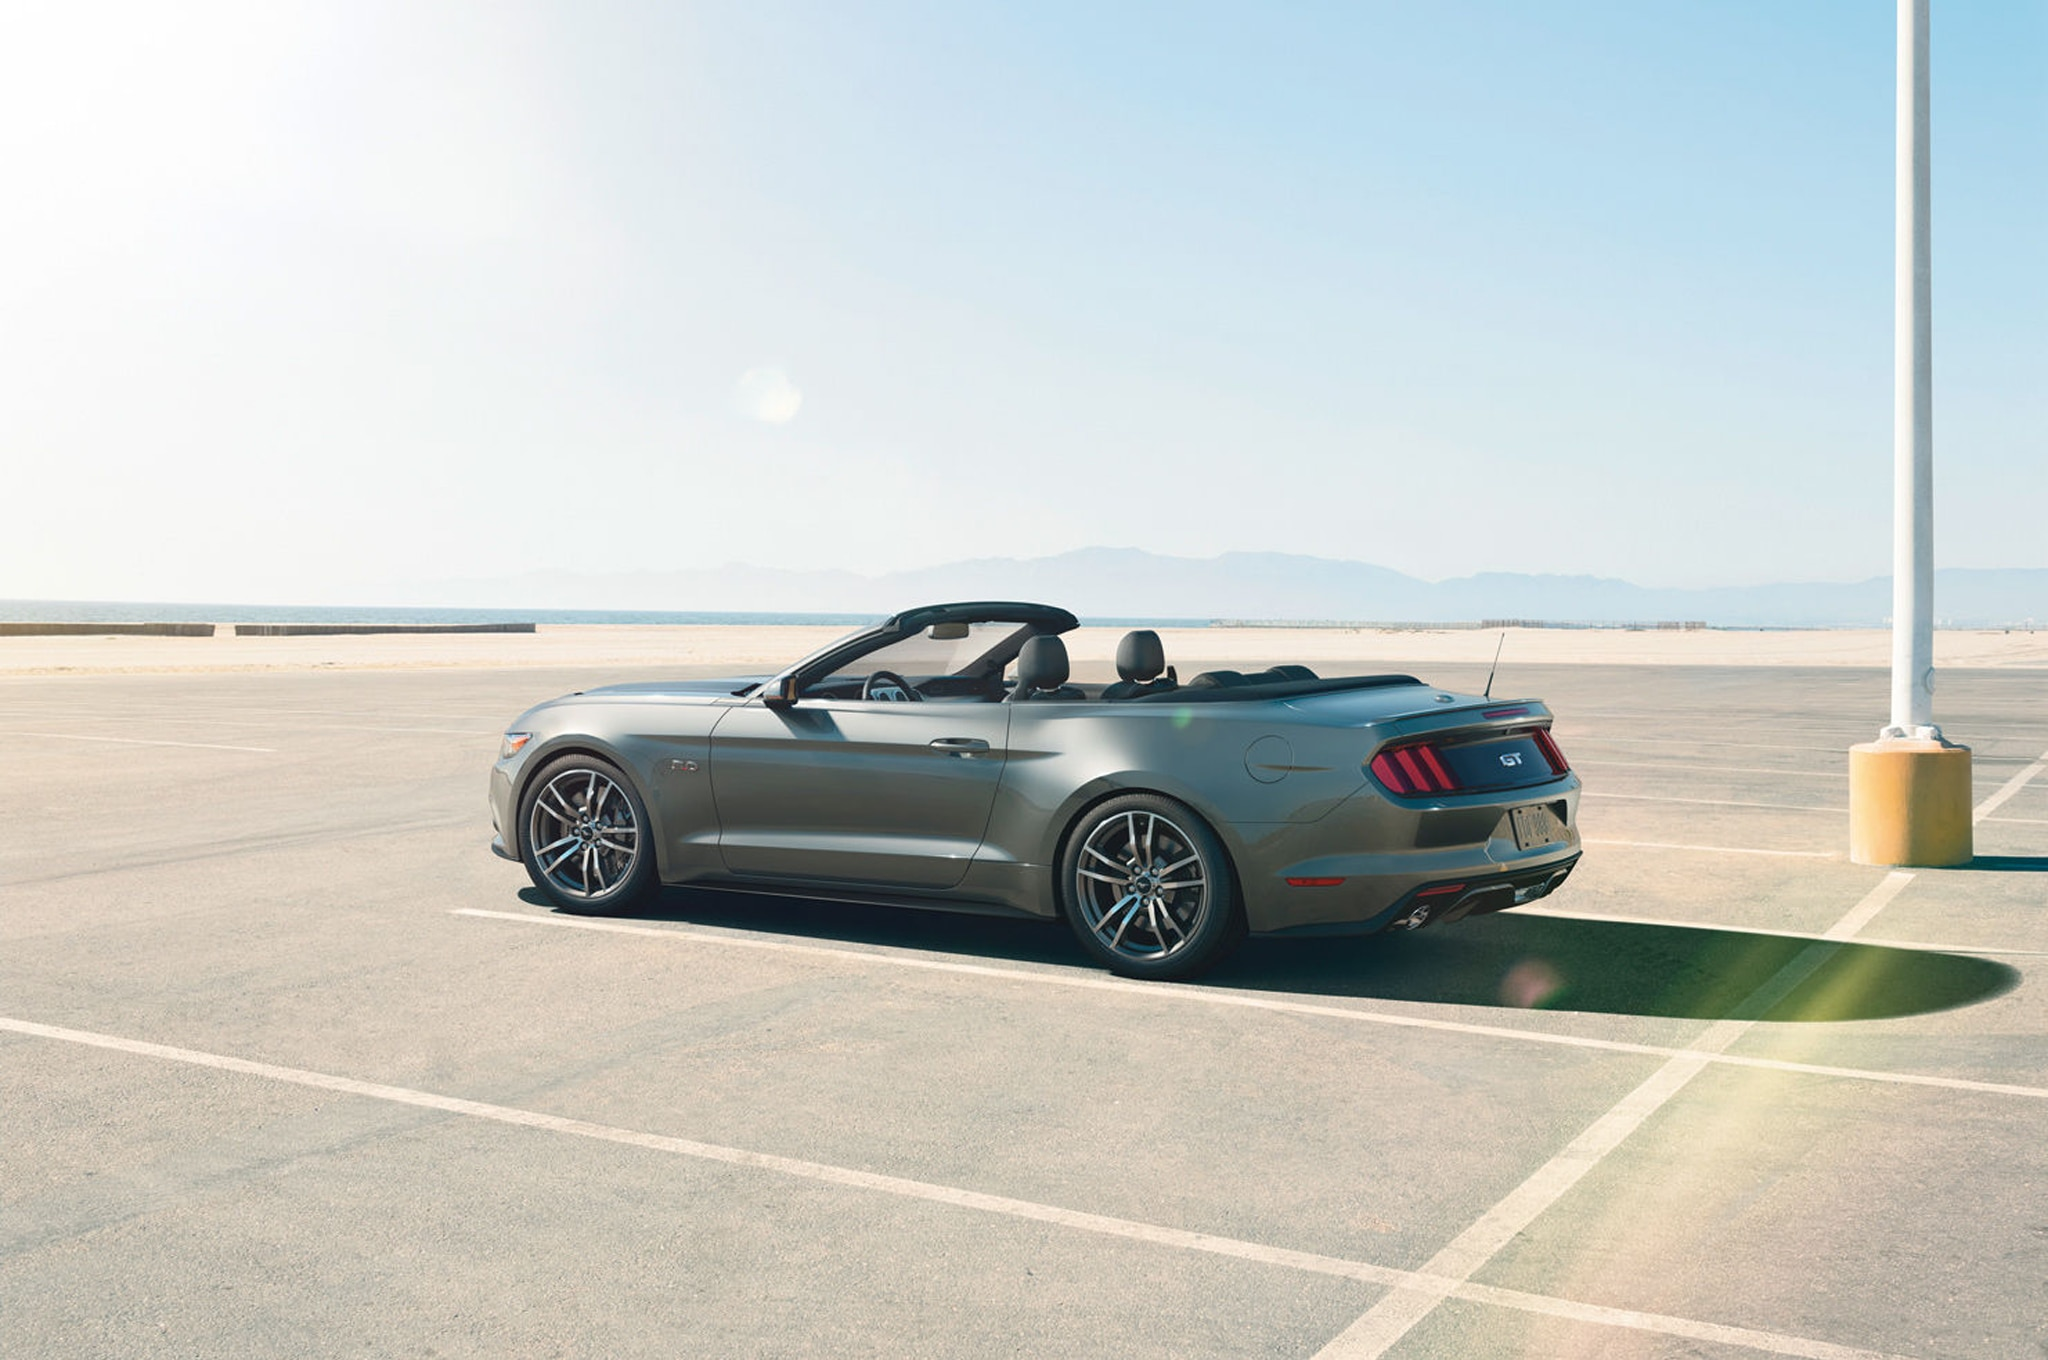 2015 ford mustang convertible. eric weiner 2015 ford mustang convertible